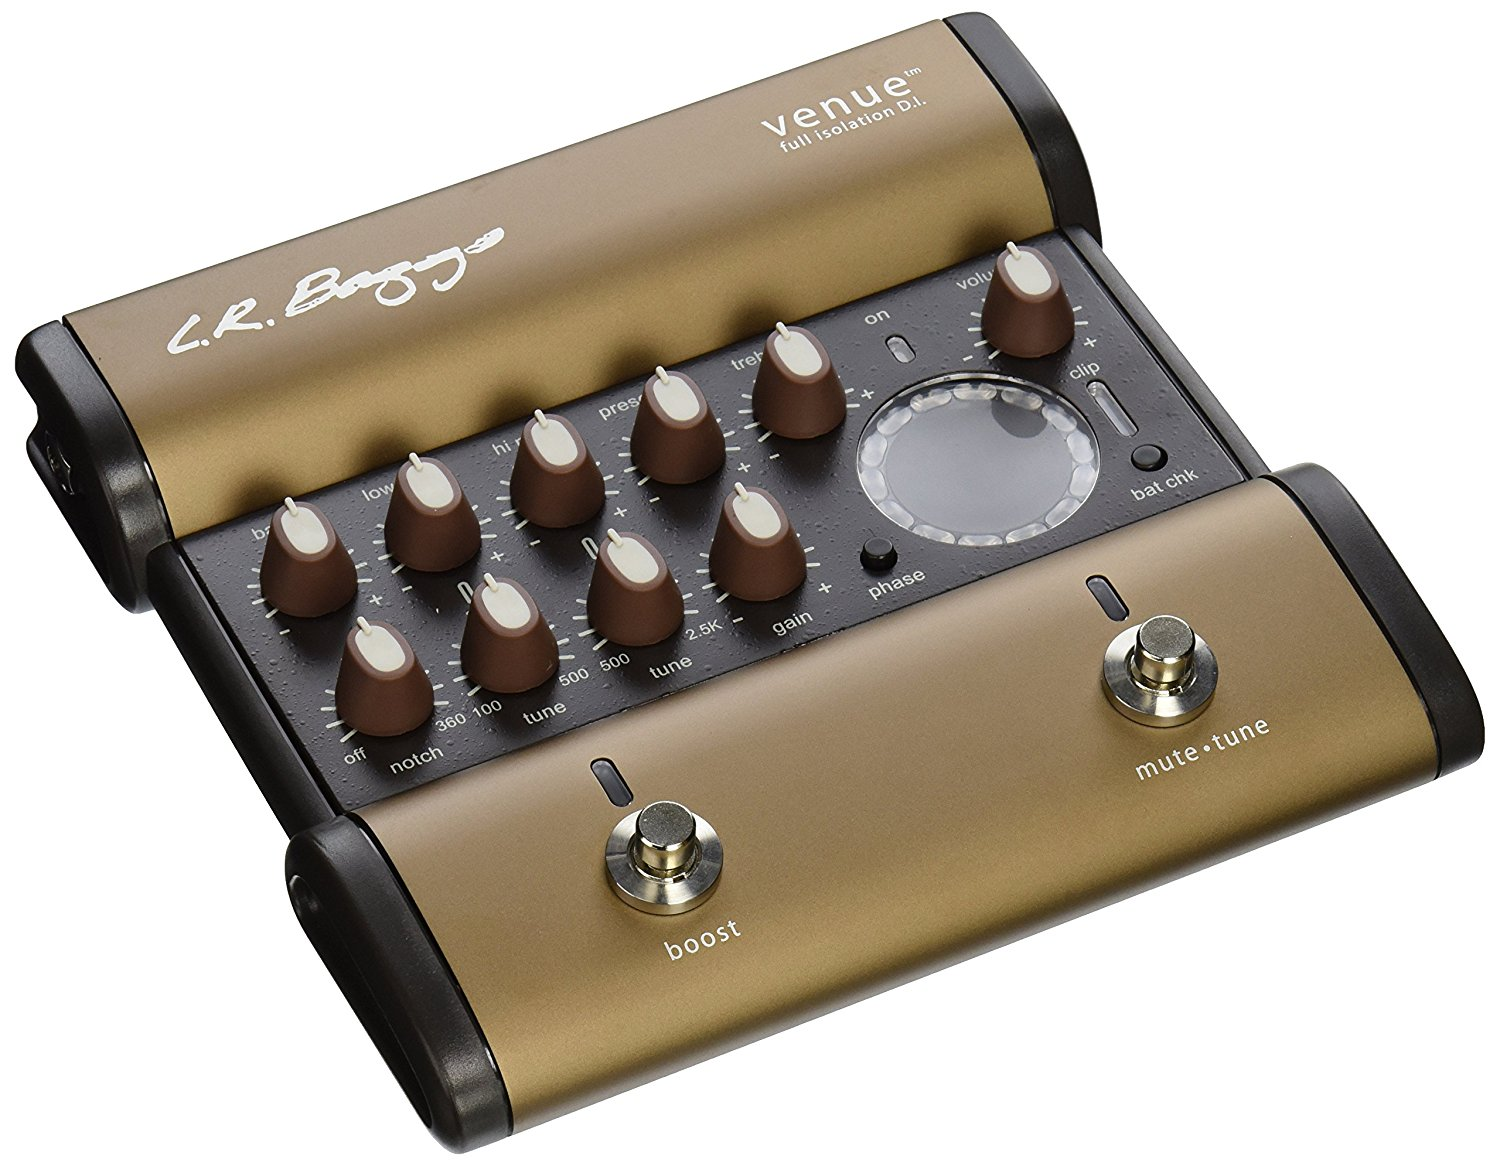 lr baggs venue di acoustic guitar preamp direct box and effects pedal 897042002181 ebay. Black Bedroom Furniture Sets. Home Design Ideas